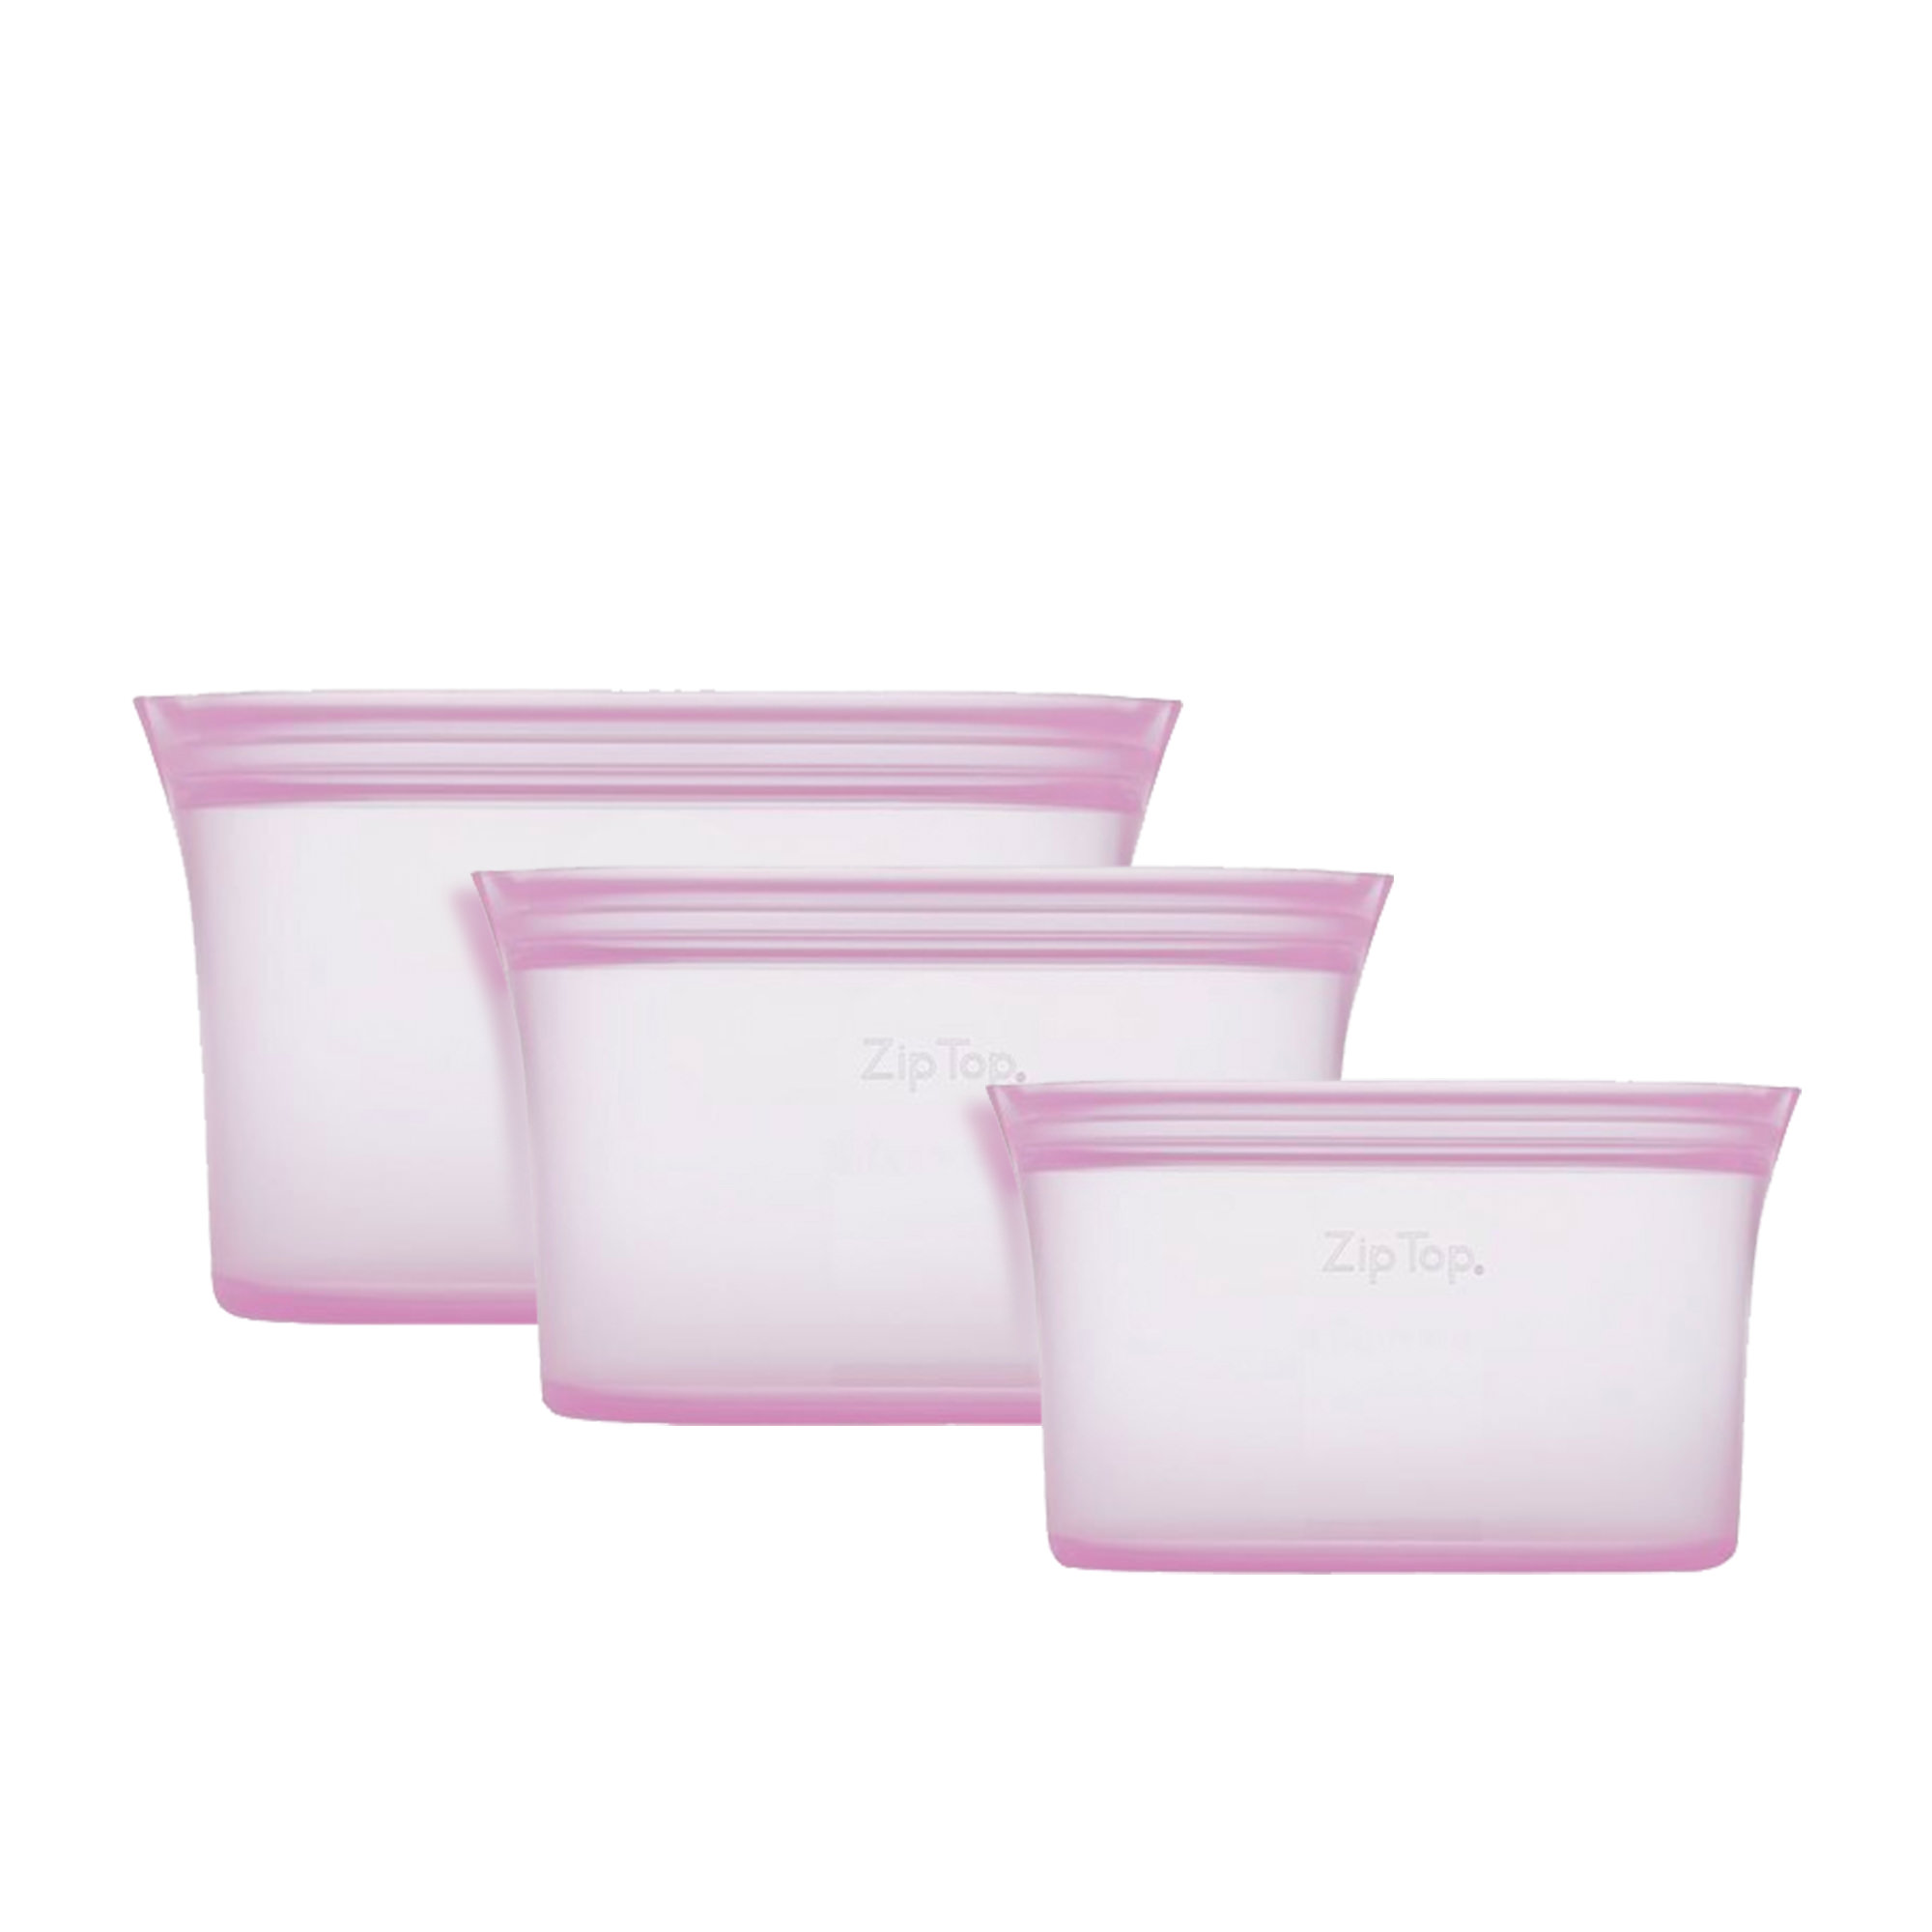 Zip Top 3pc Platinum Silicone Dish Container Set Lavender